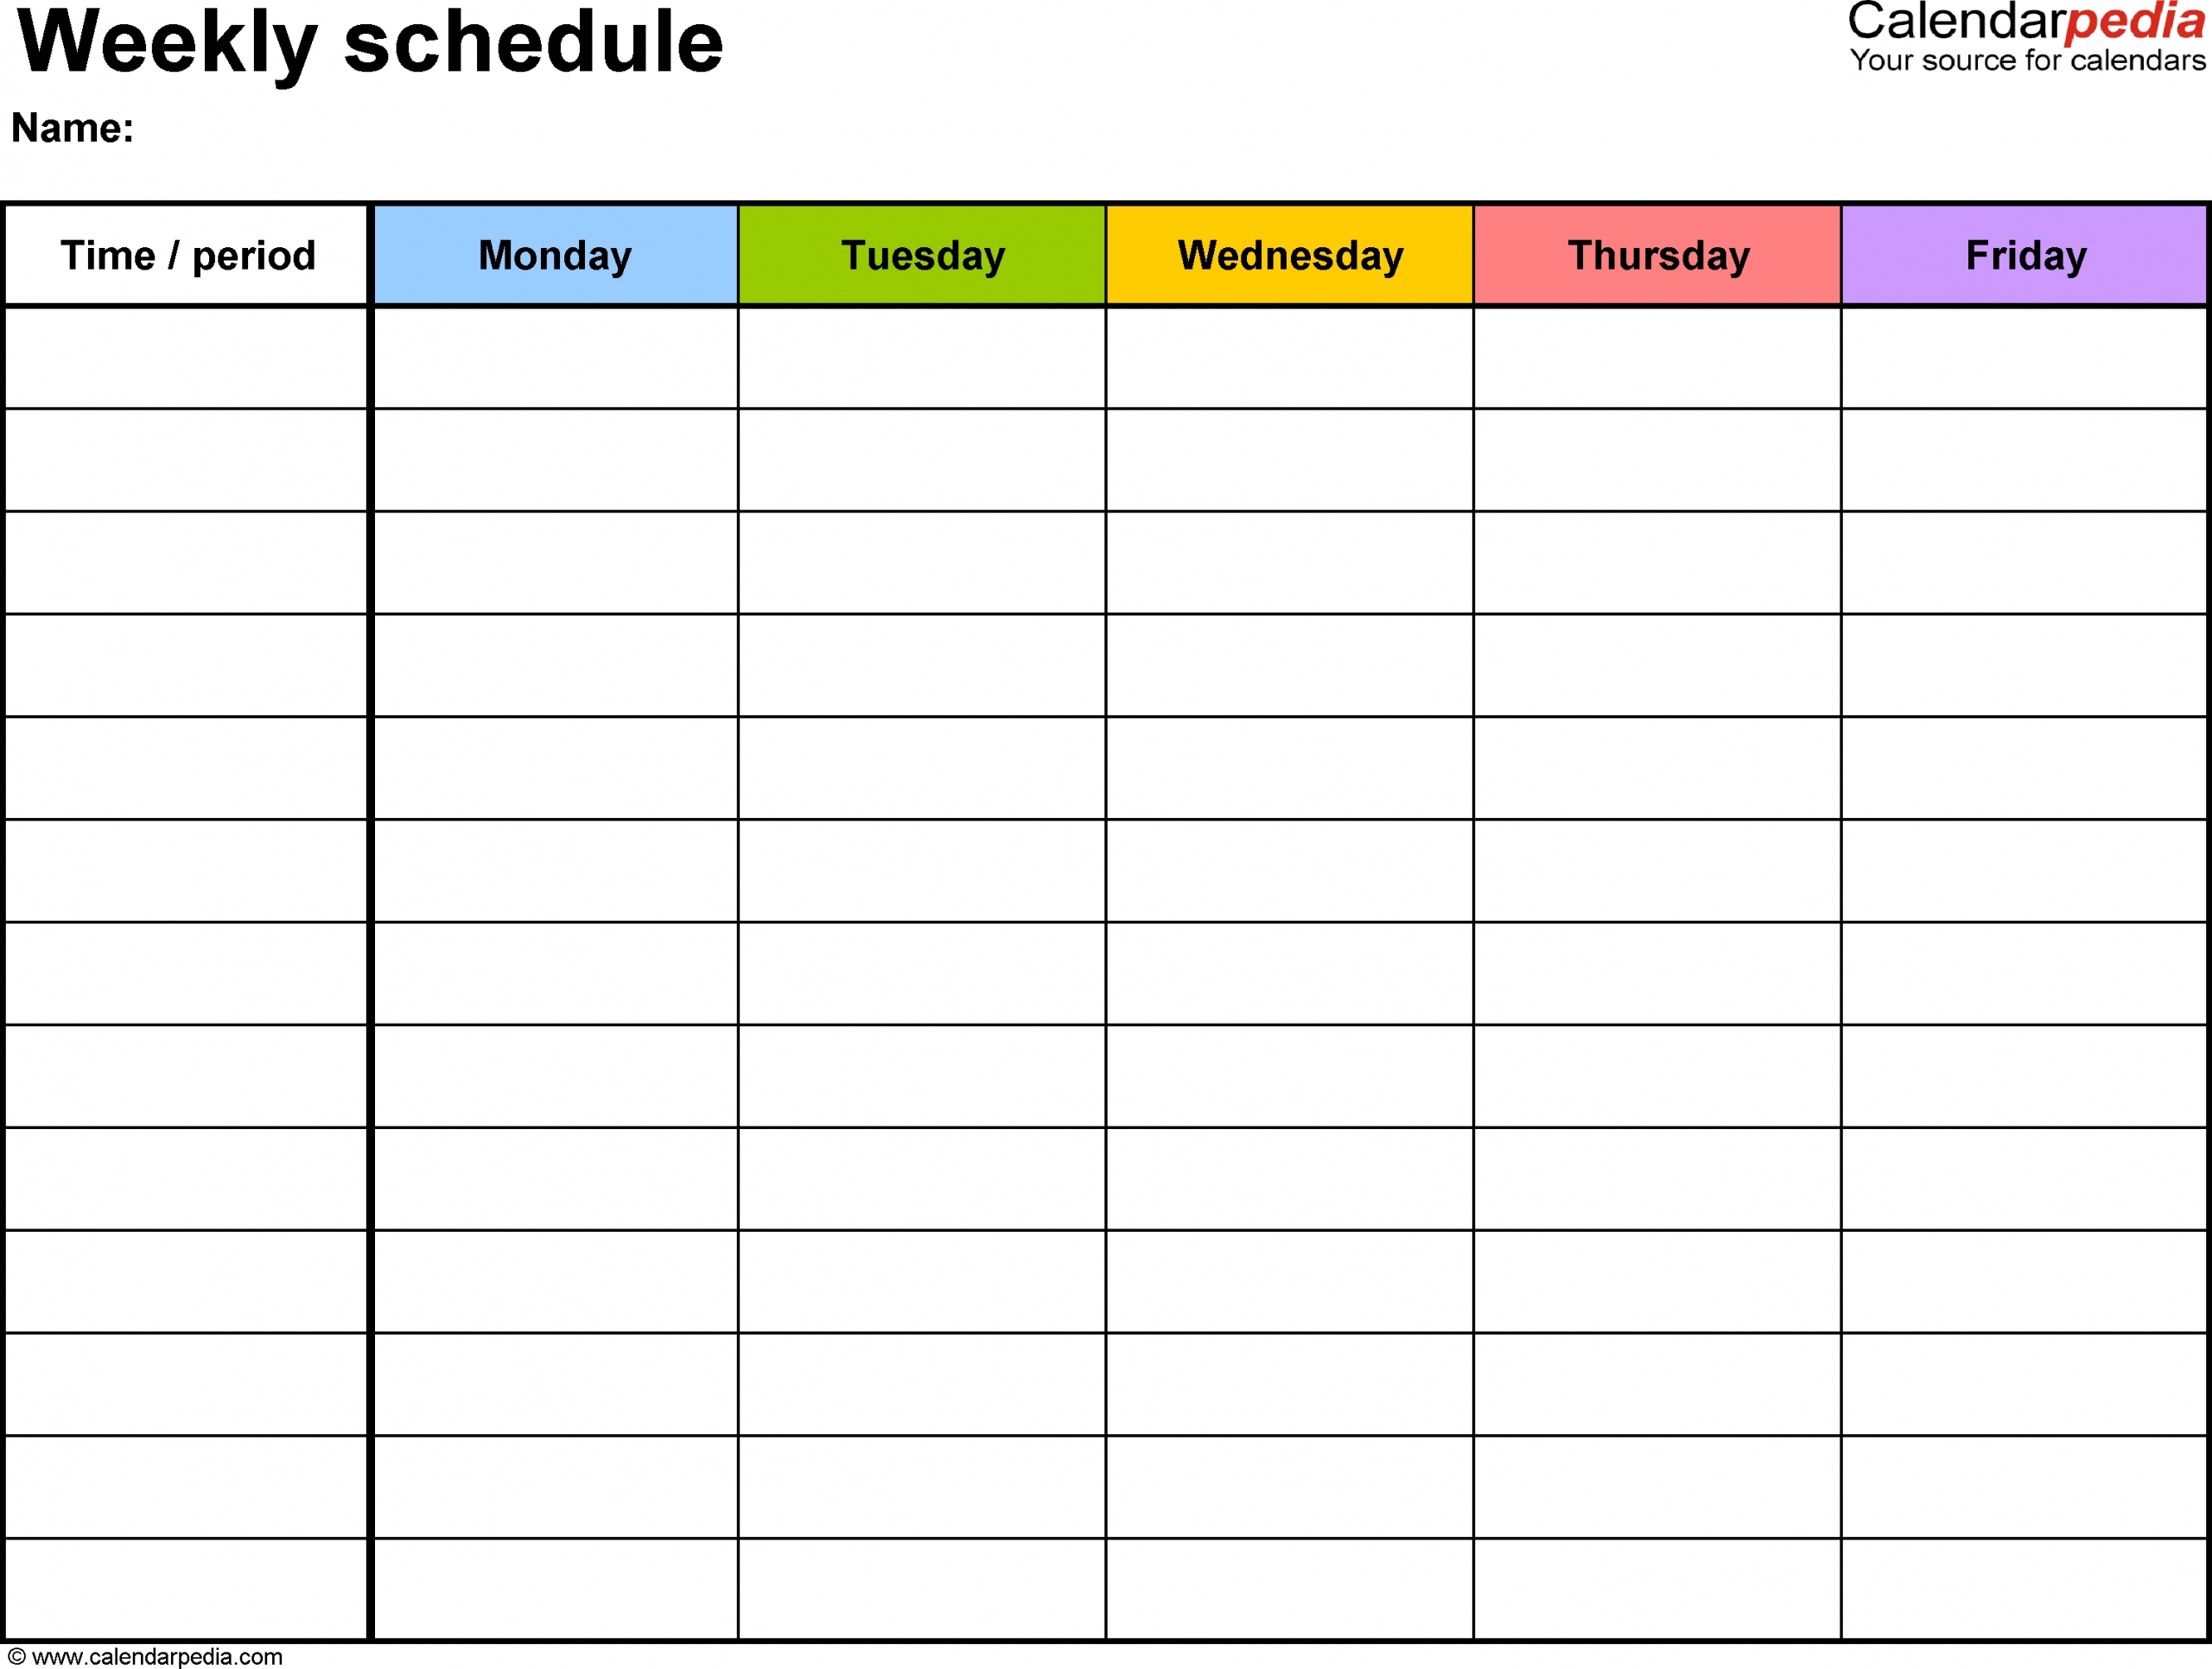 Free Weekly Schedule Templates For Word - 18 Templates regarding Monday - Sunday Calendar Template